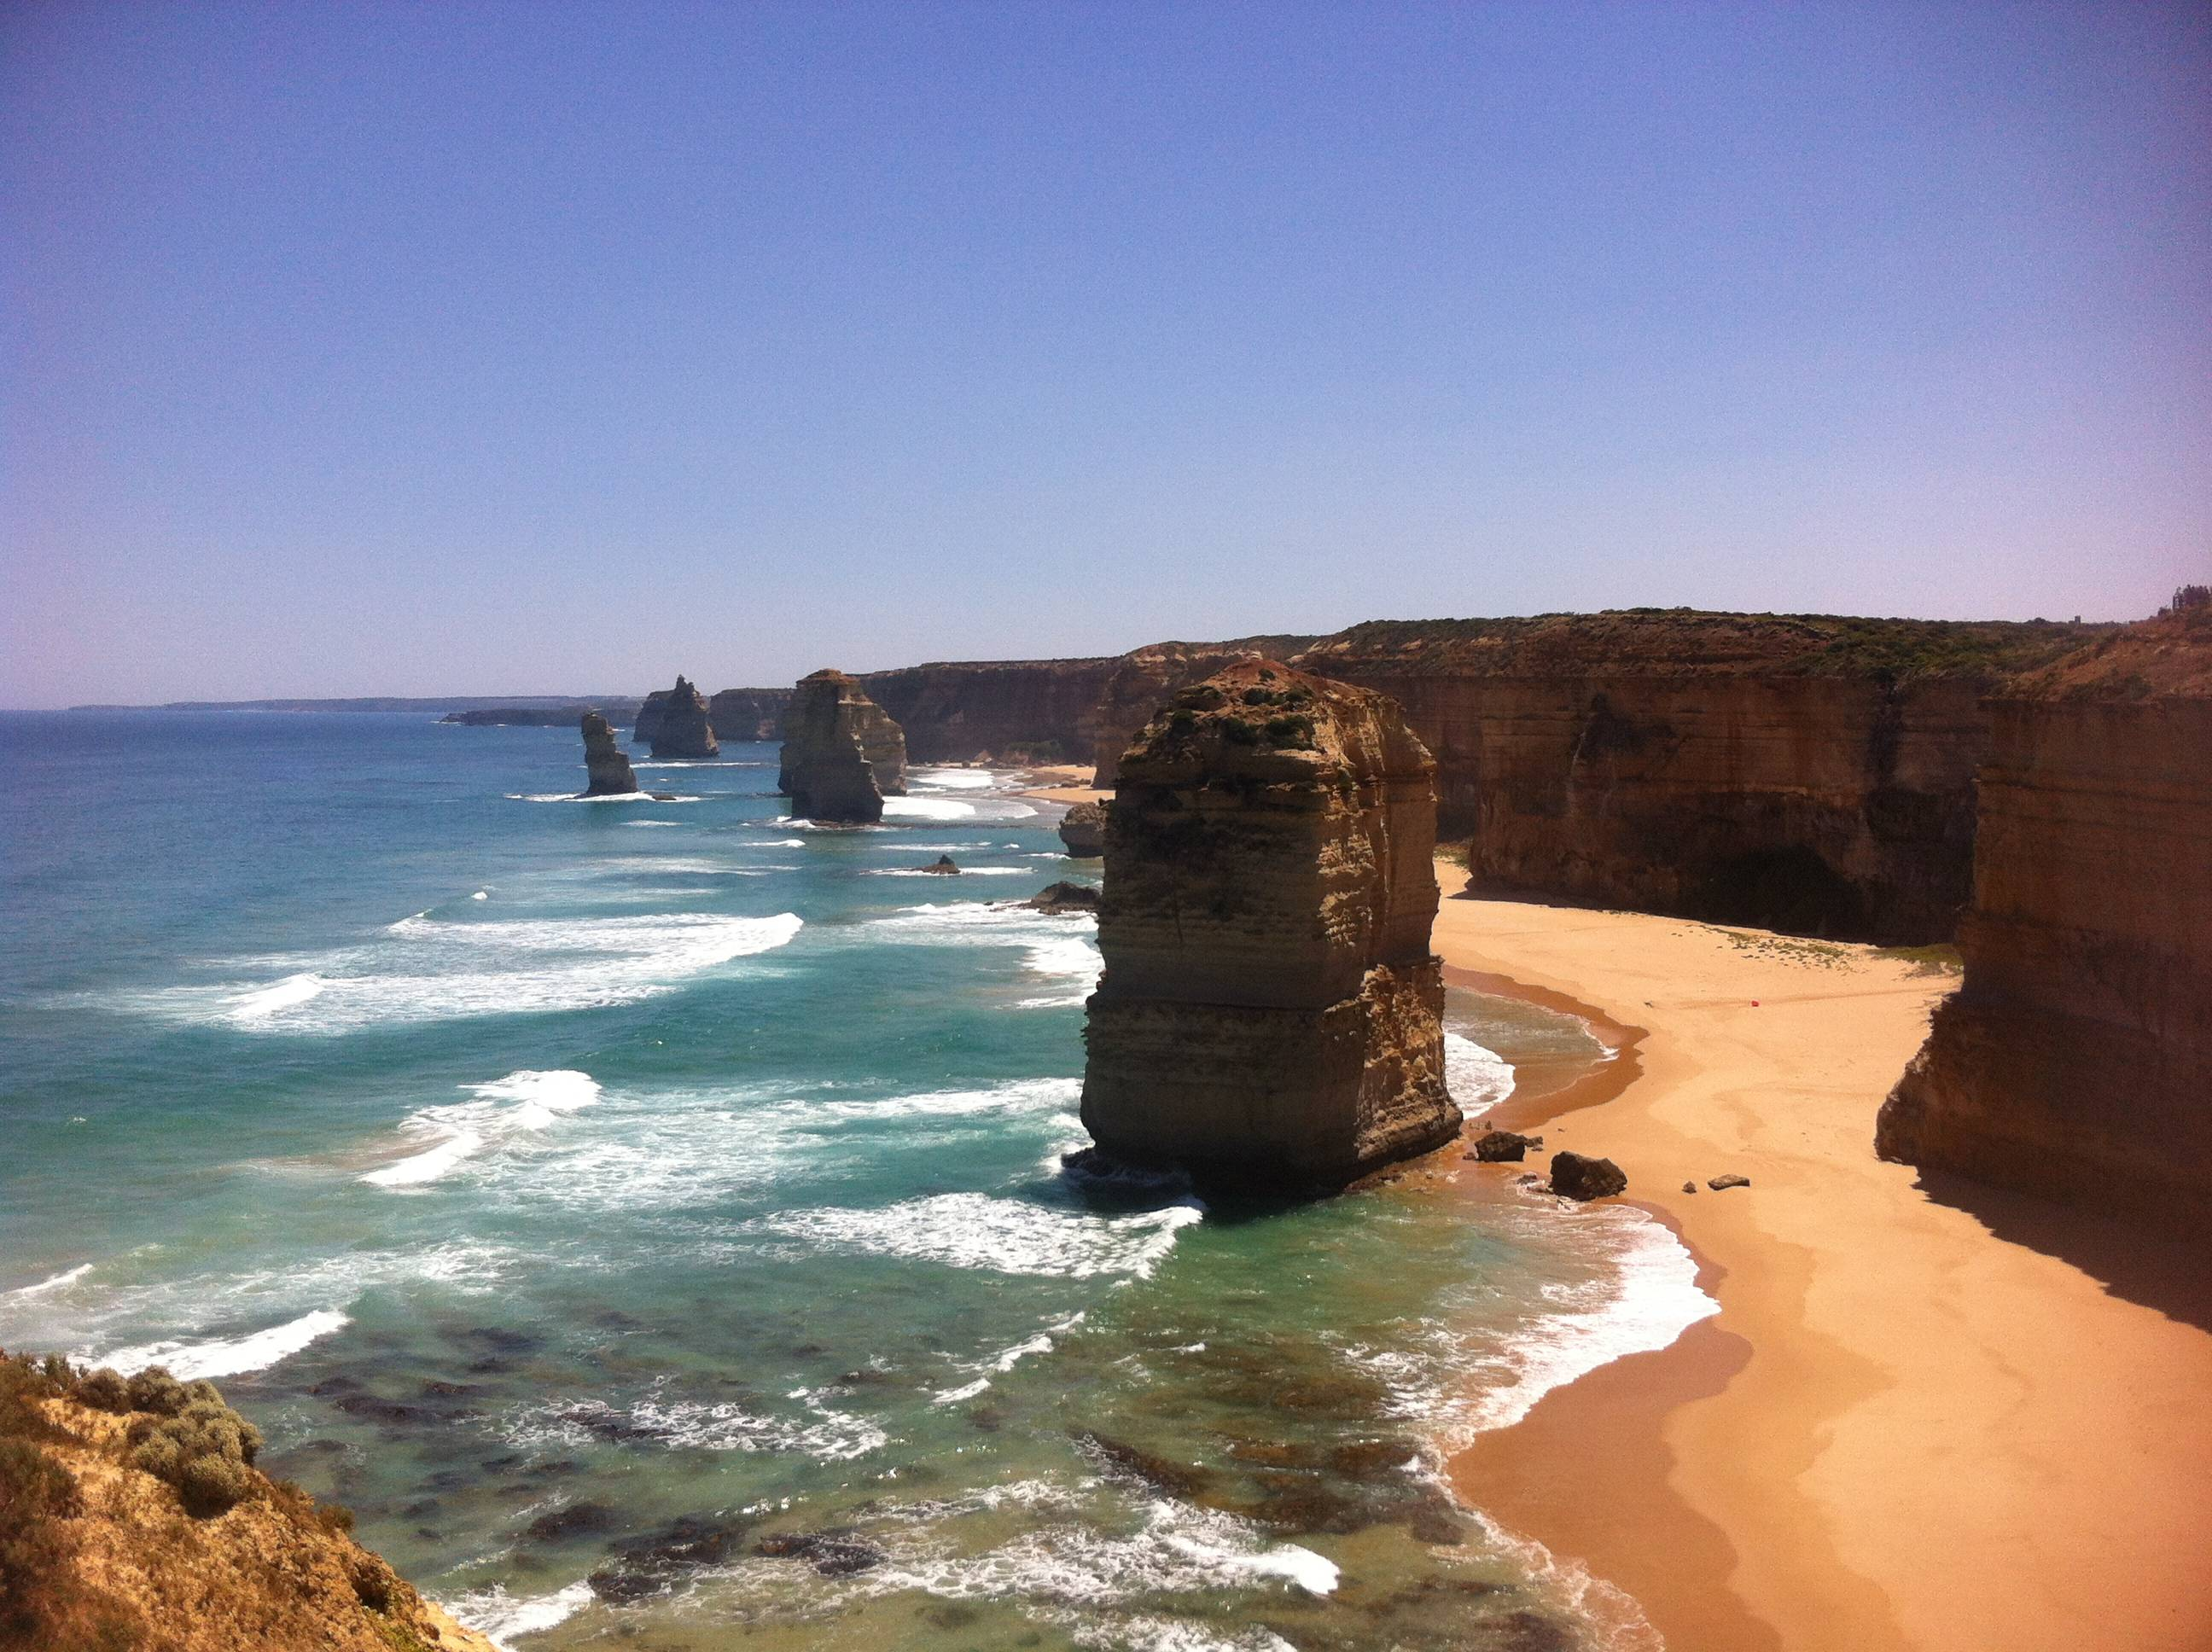 Photo 2: The great ocean road